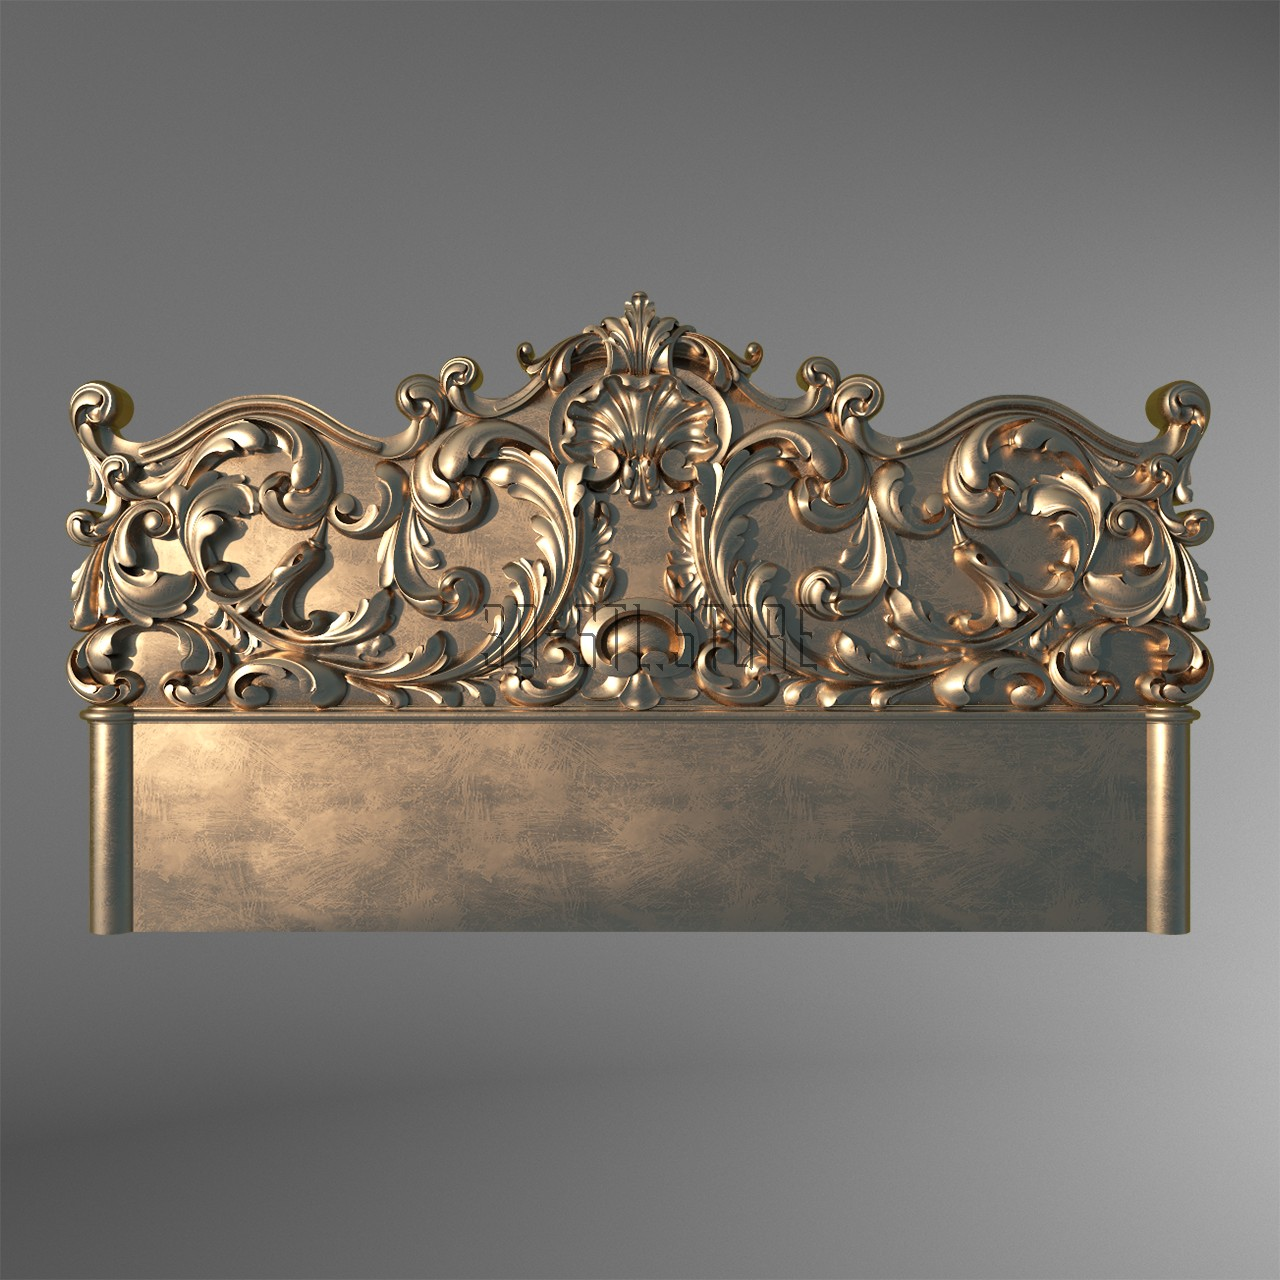 Carved headboarde, 3d models (stl)